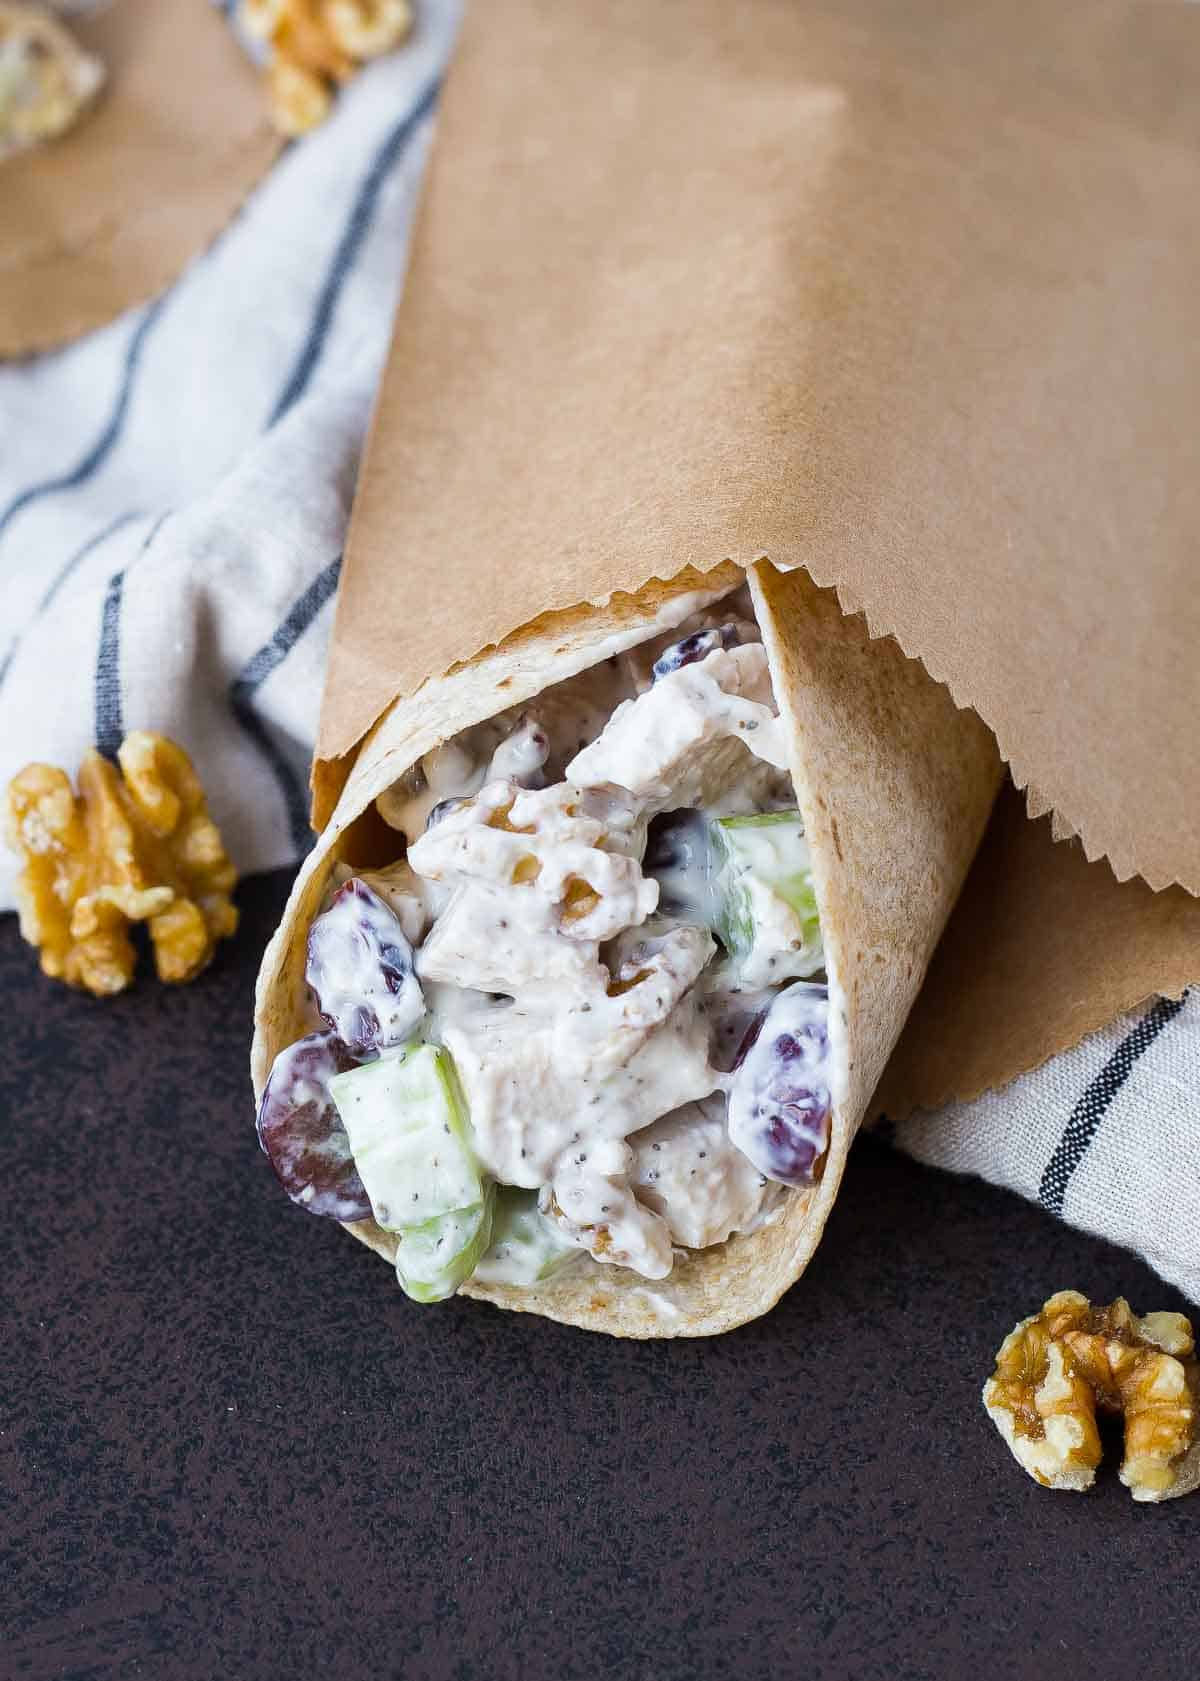 Chicken salad wrap partially contained in brown paper bag.